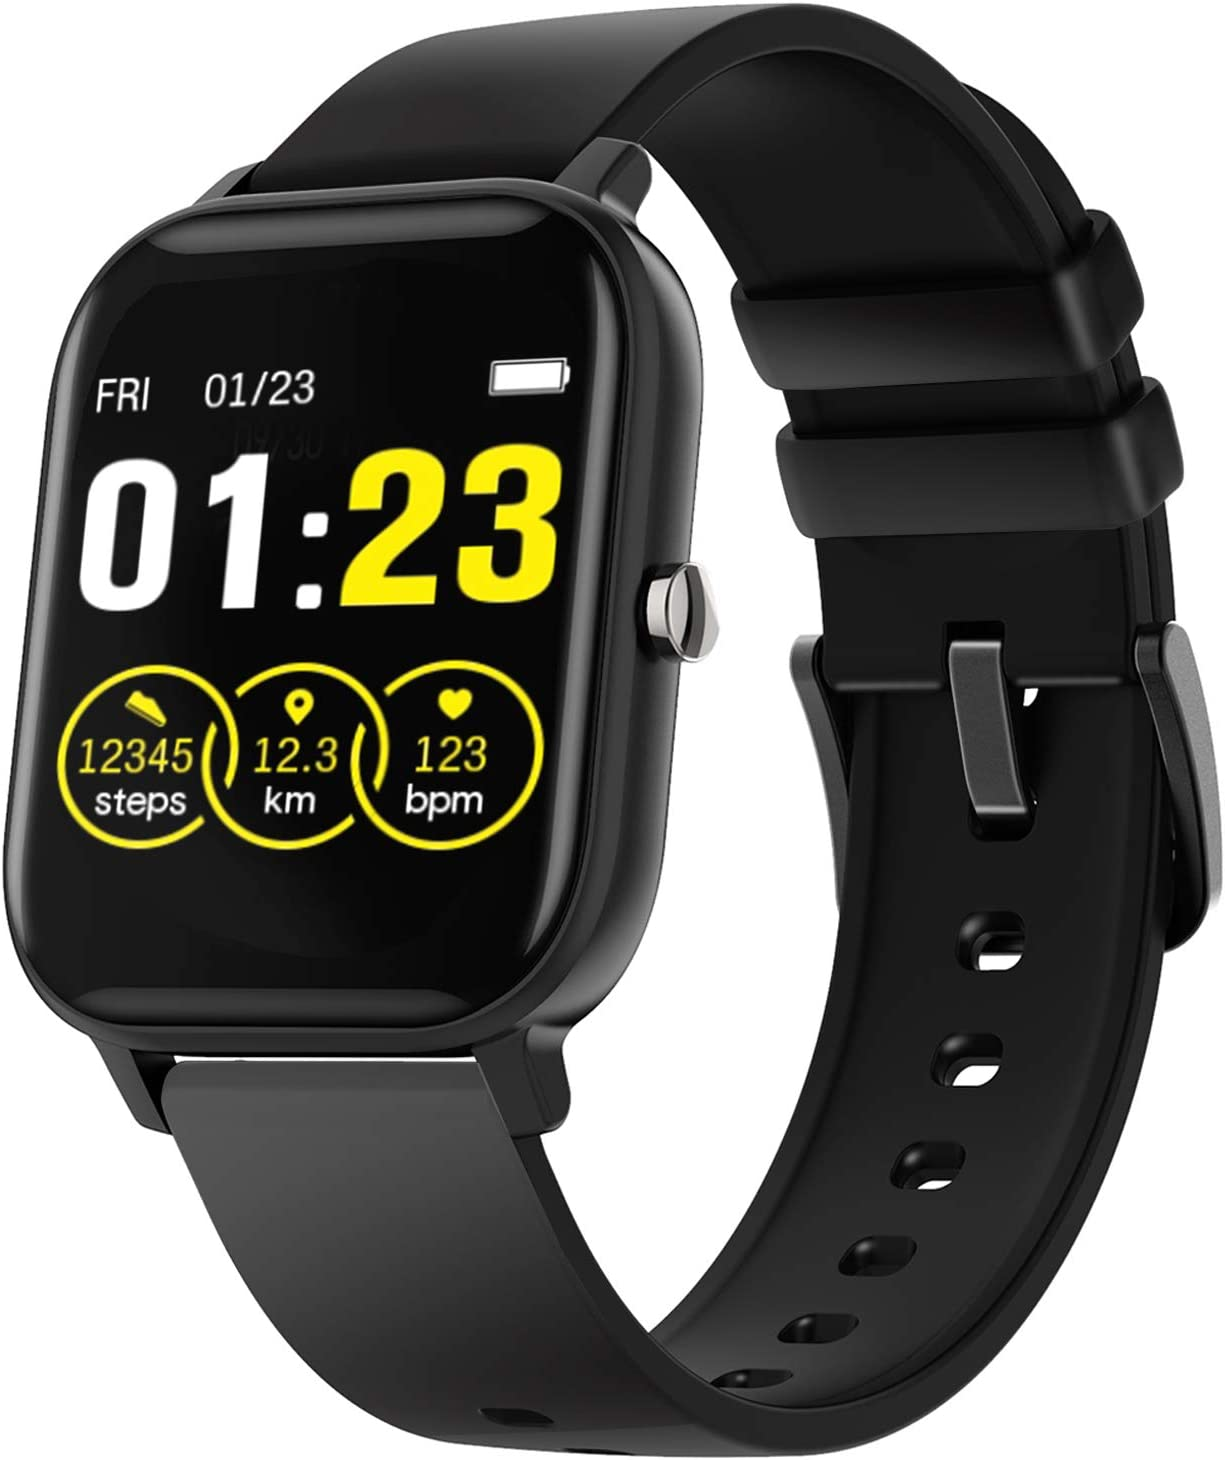 Android Smart Watch, iPhone Compatible Smartwatch for Women Men Fitness Tracker with Heart Rate Blood Pressure Monitor Sleep Monitor, Activity Tracker with Pedometer, IP67 Waterproof Fitness Watch